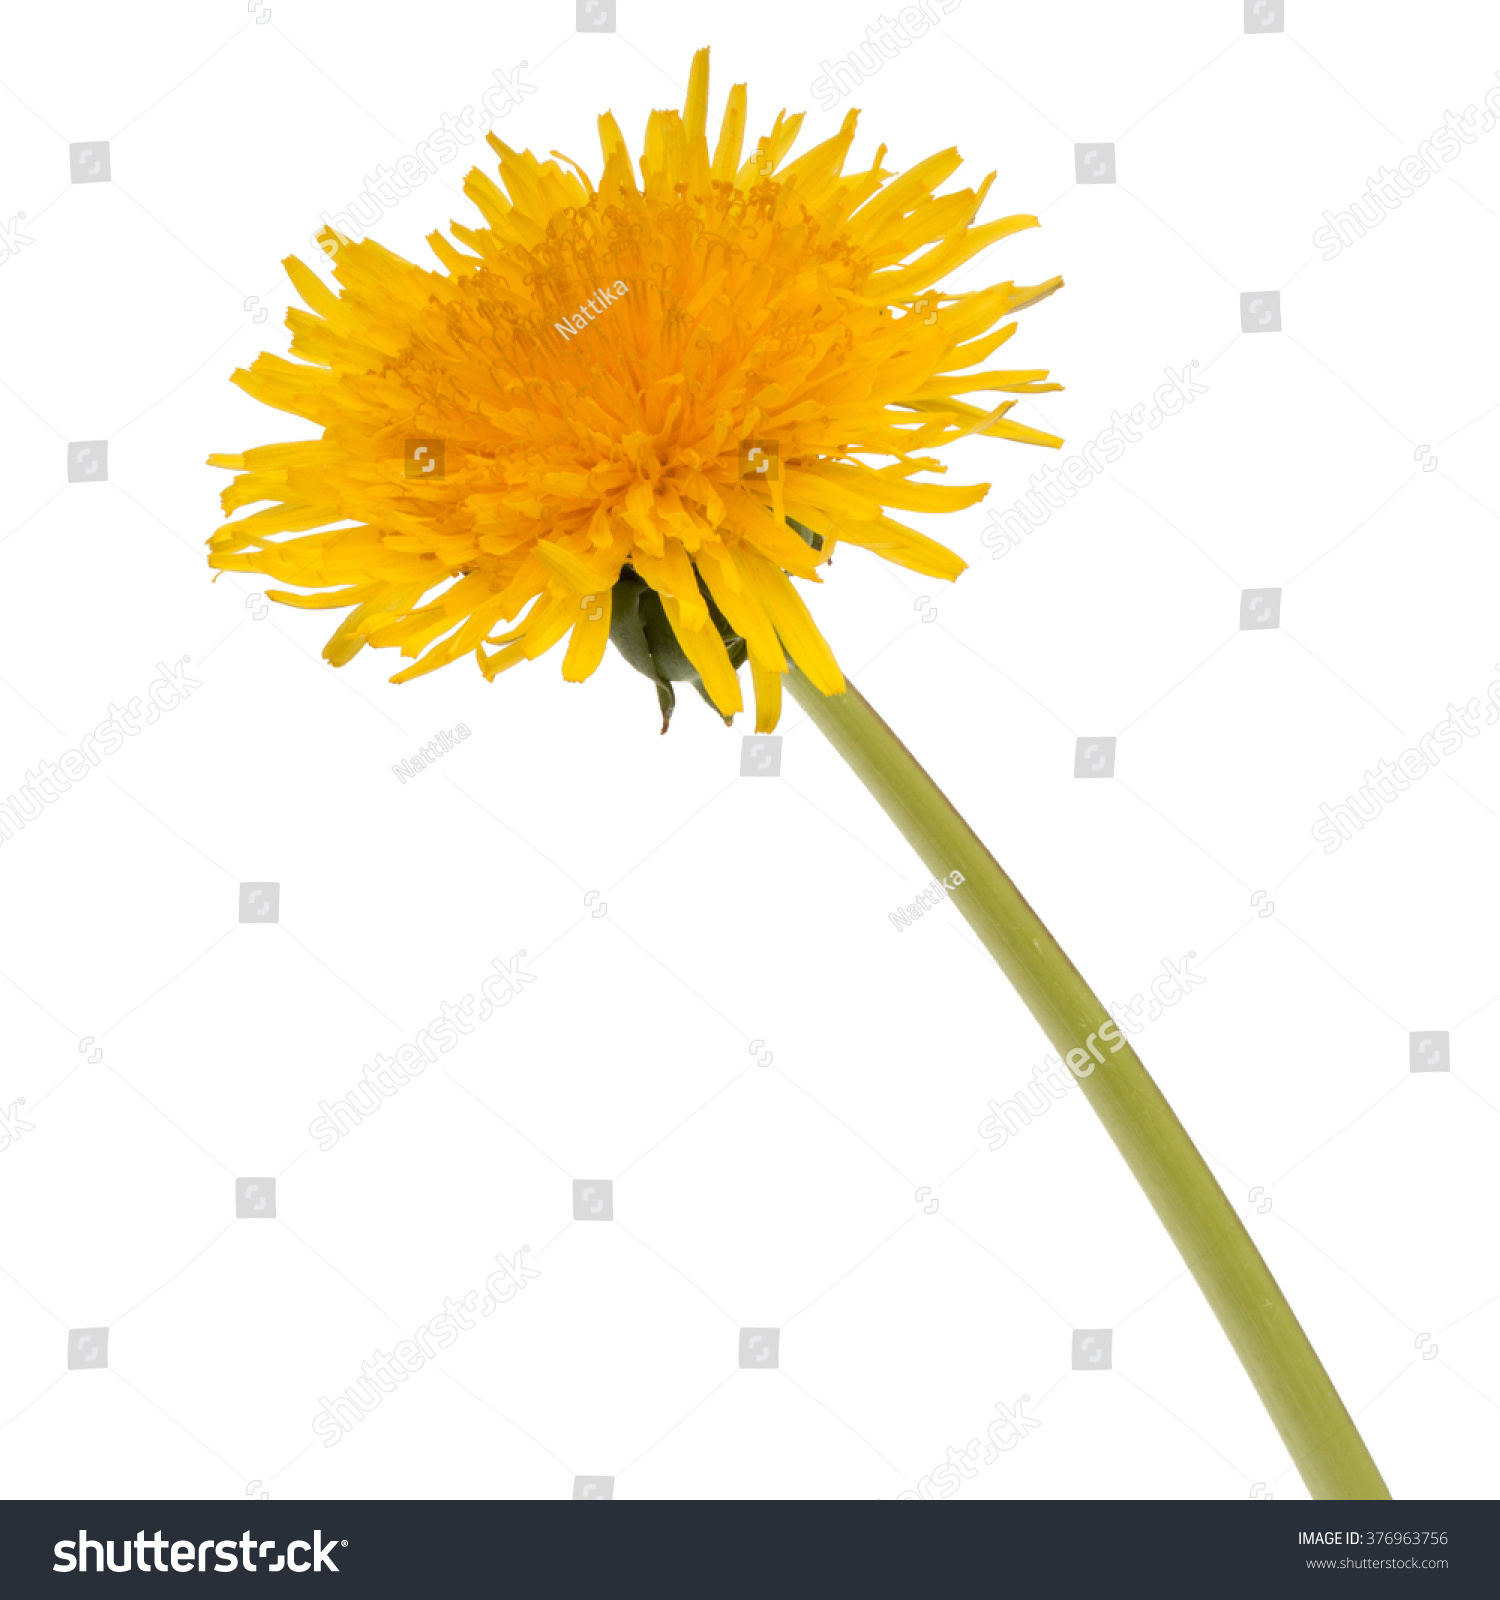 dandelion flower isolated on white background cutout | ez canvas